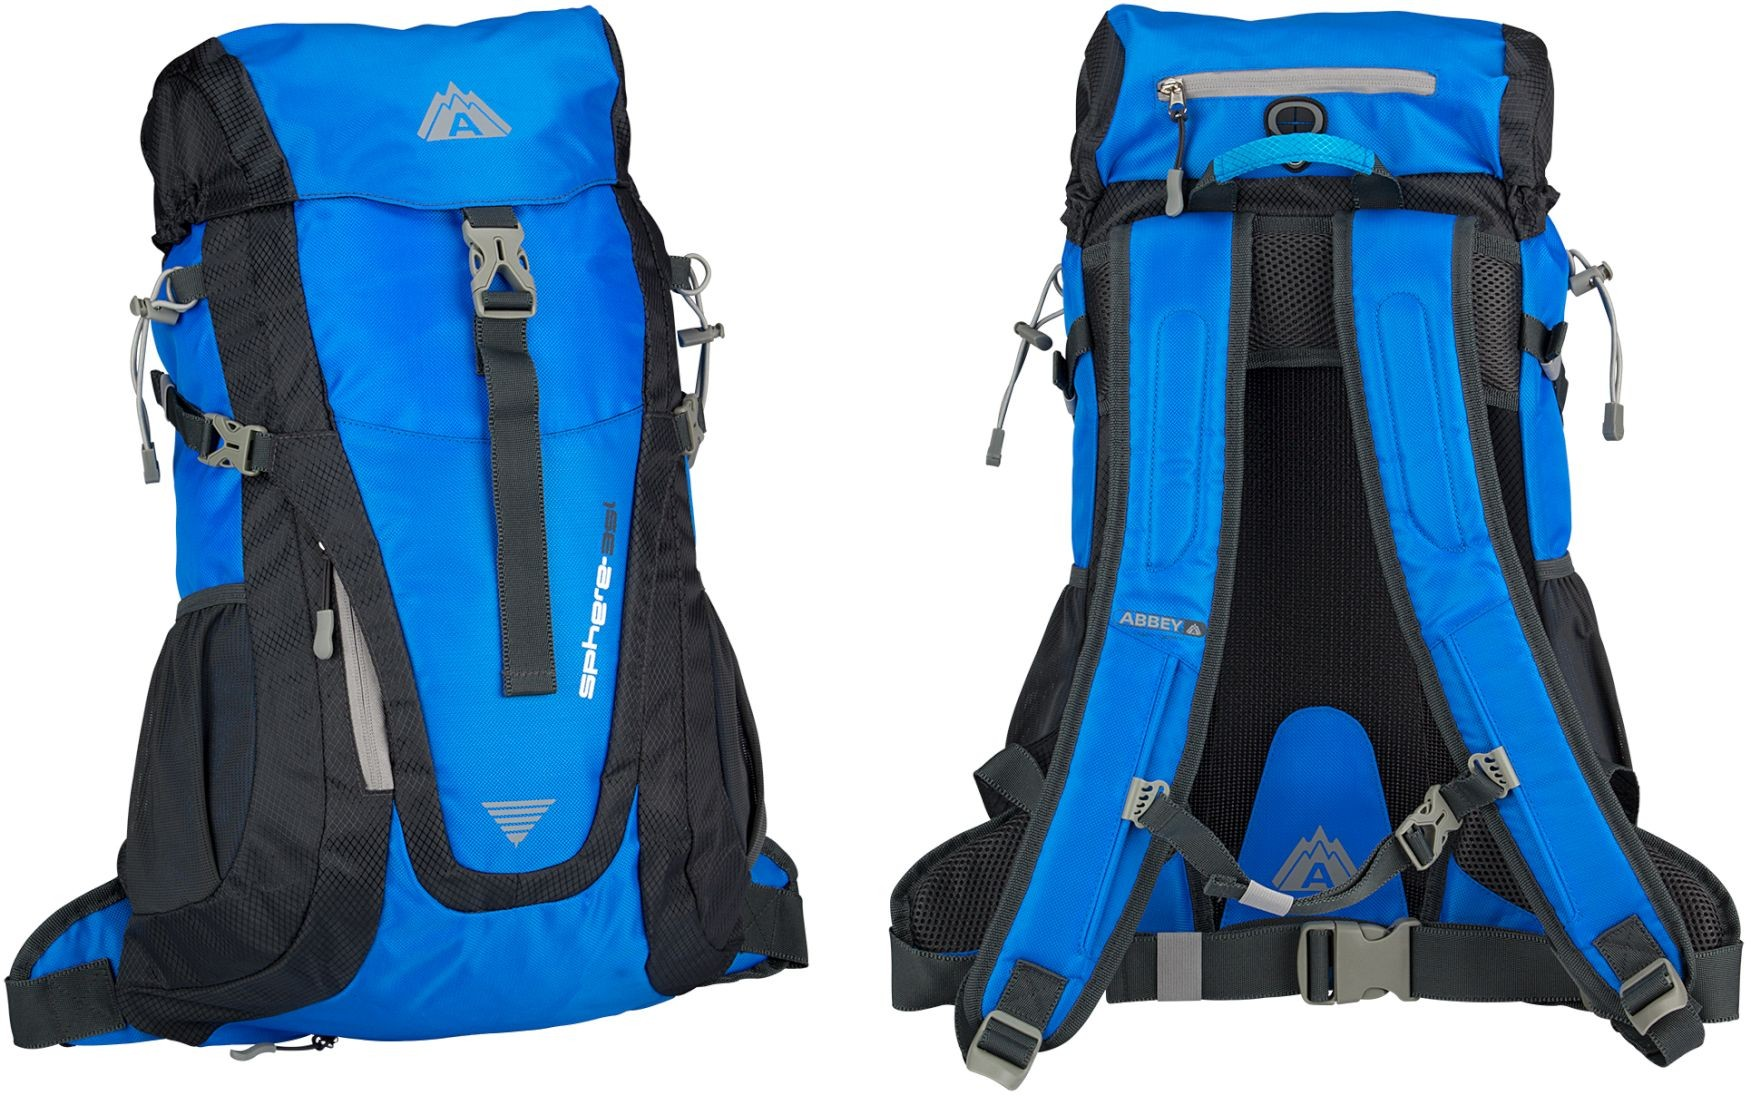 ABBEY Outdoor Areo-Fit Backpack 35L